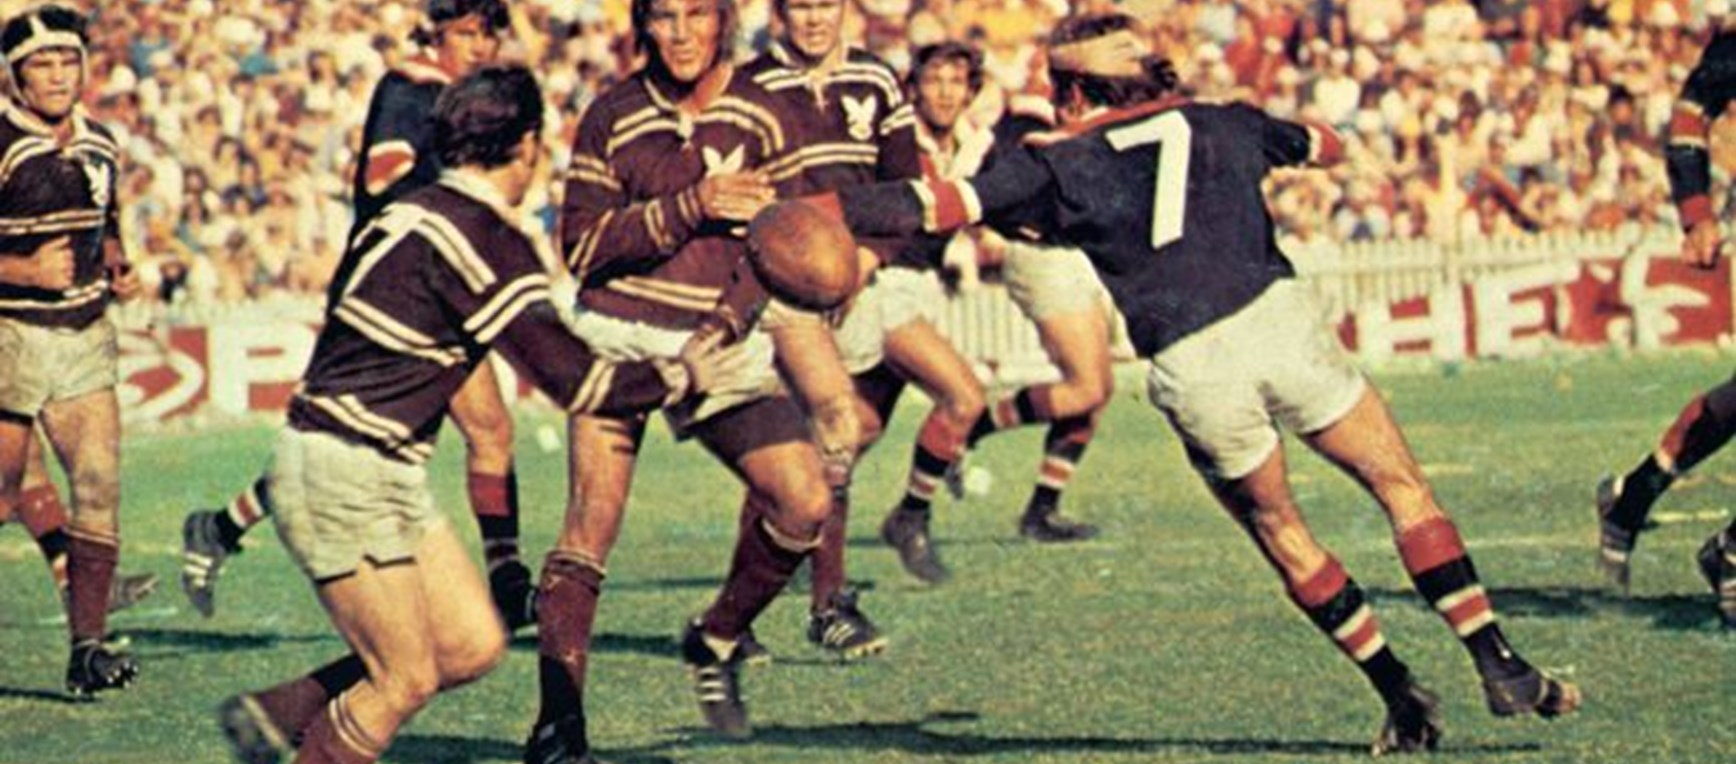 Archives Series showcases Sea Eagles history